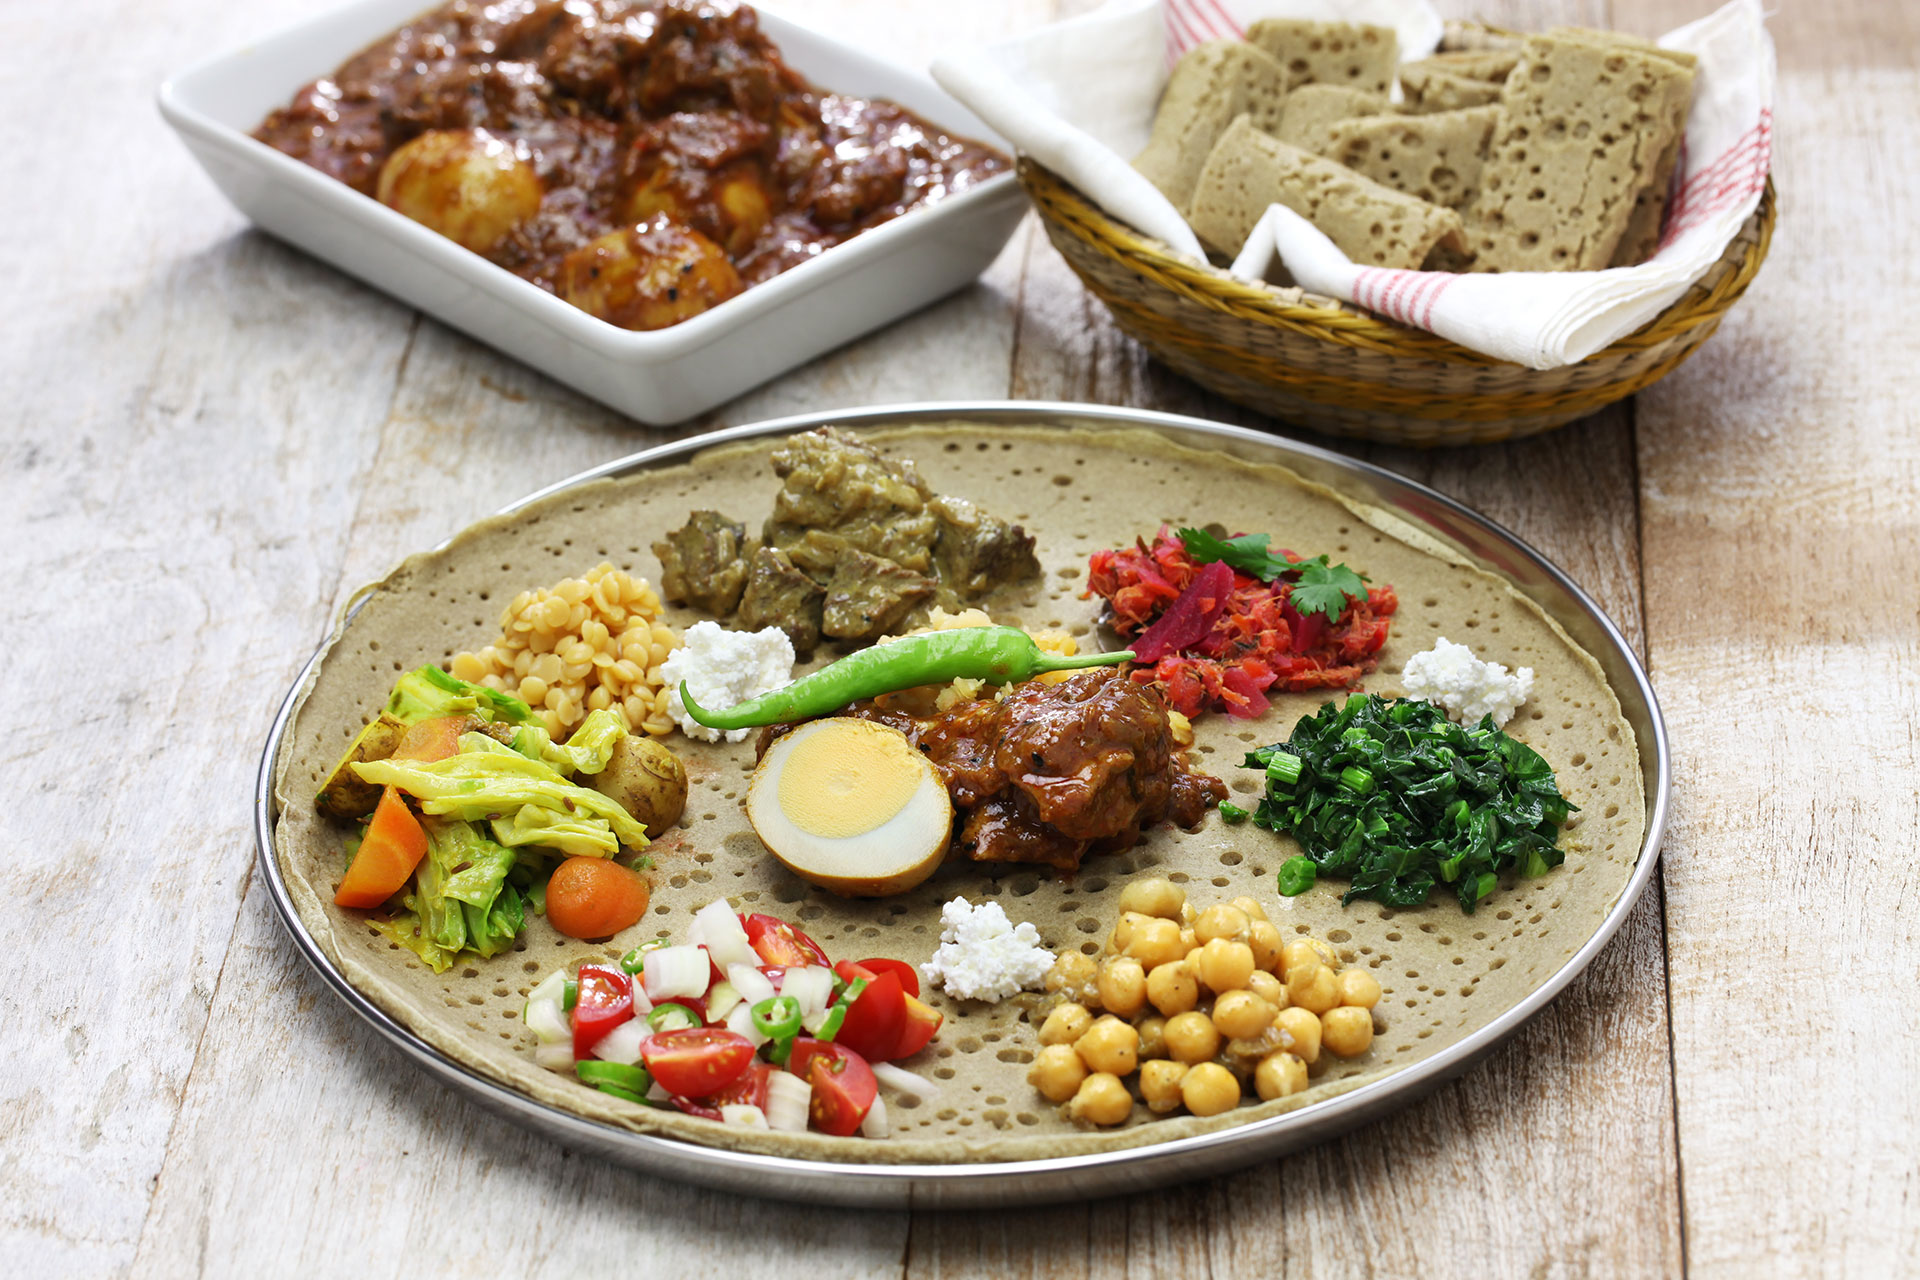 A plate of fresh, colorful Ethiopian food with adjacent dishes of meat stew and a basket of traditional flatbread.